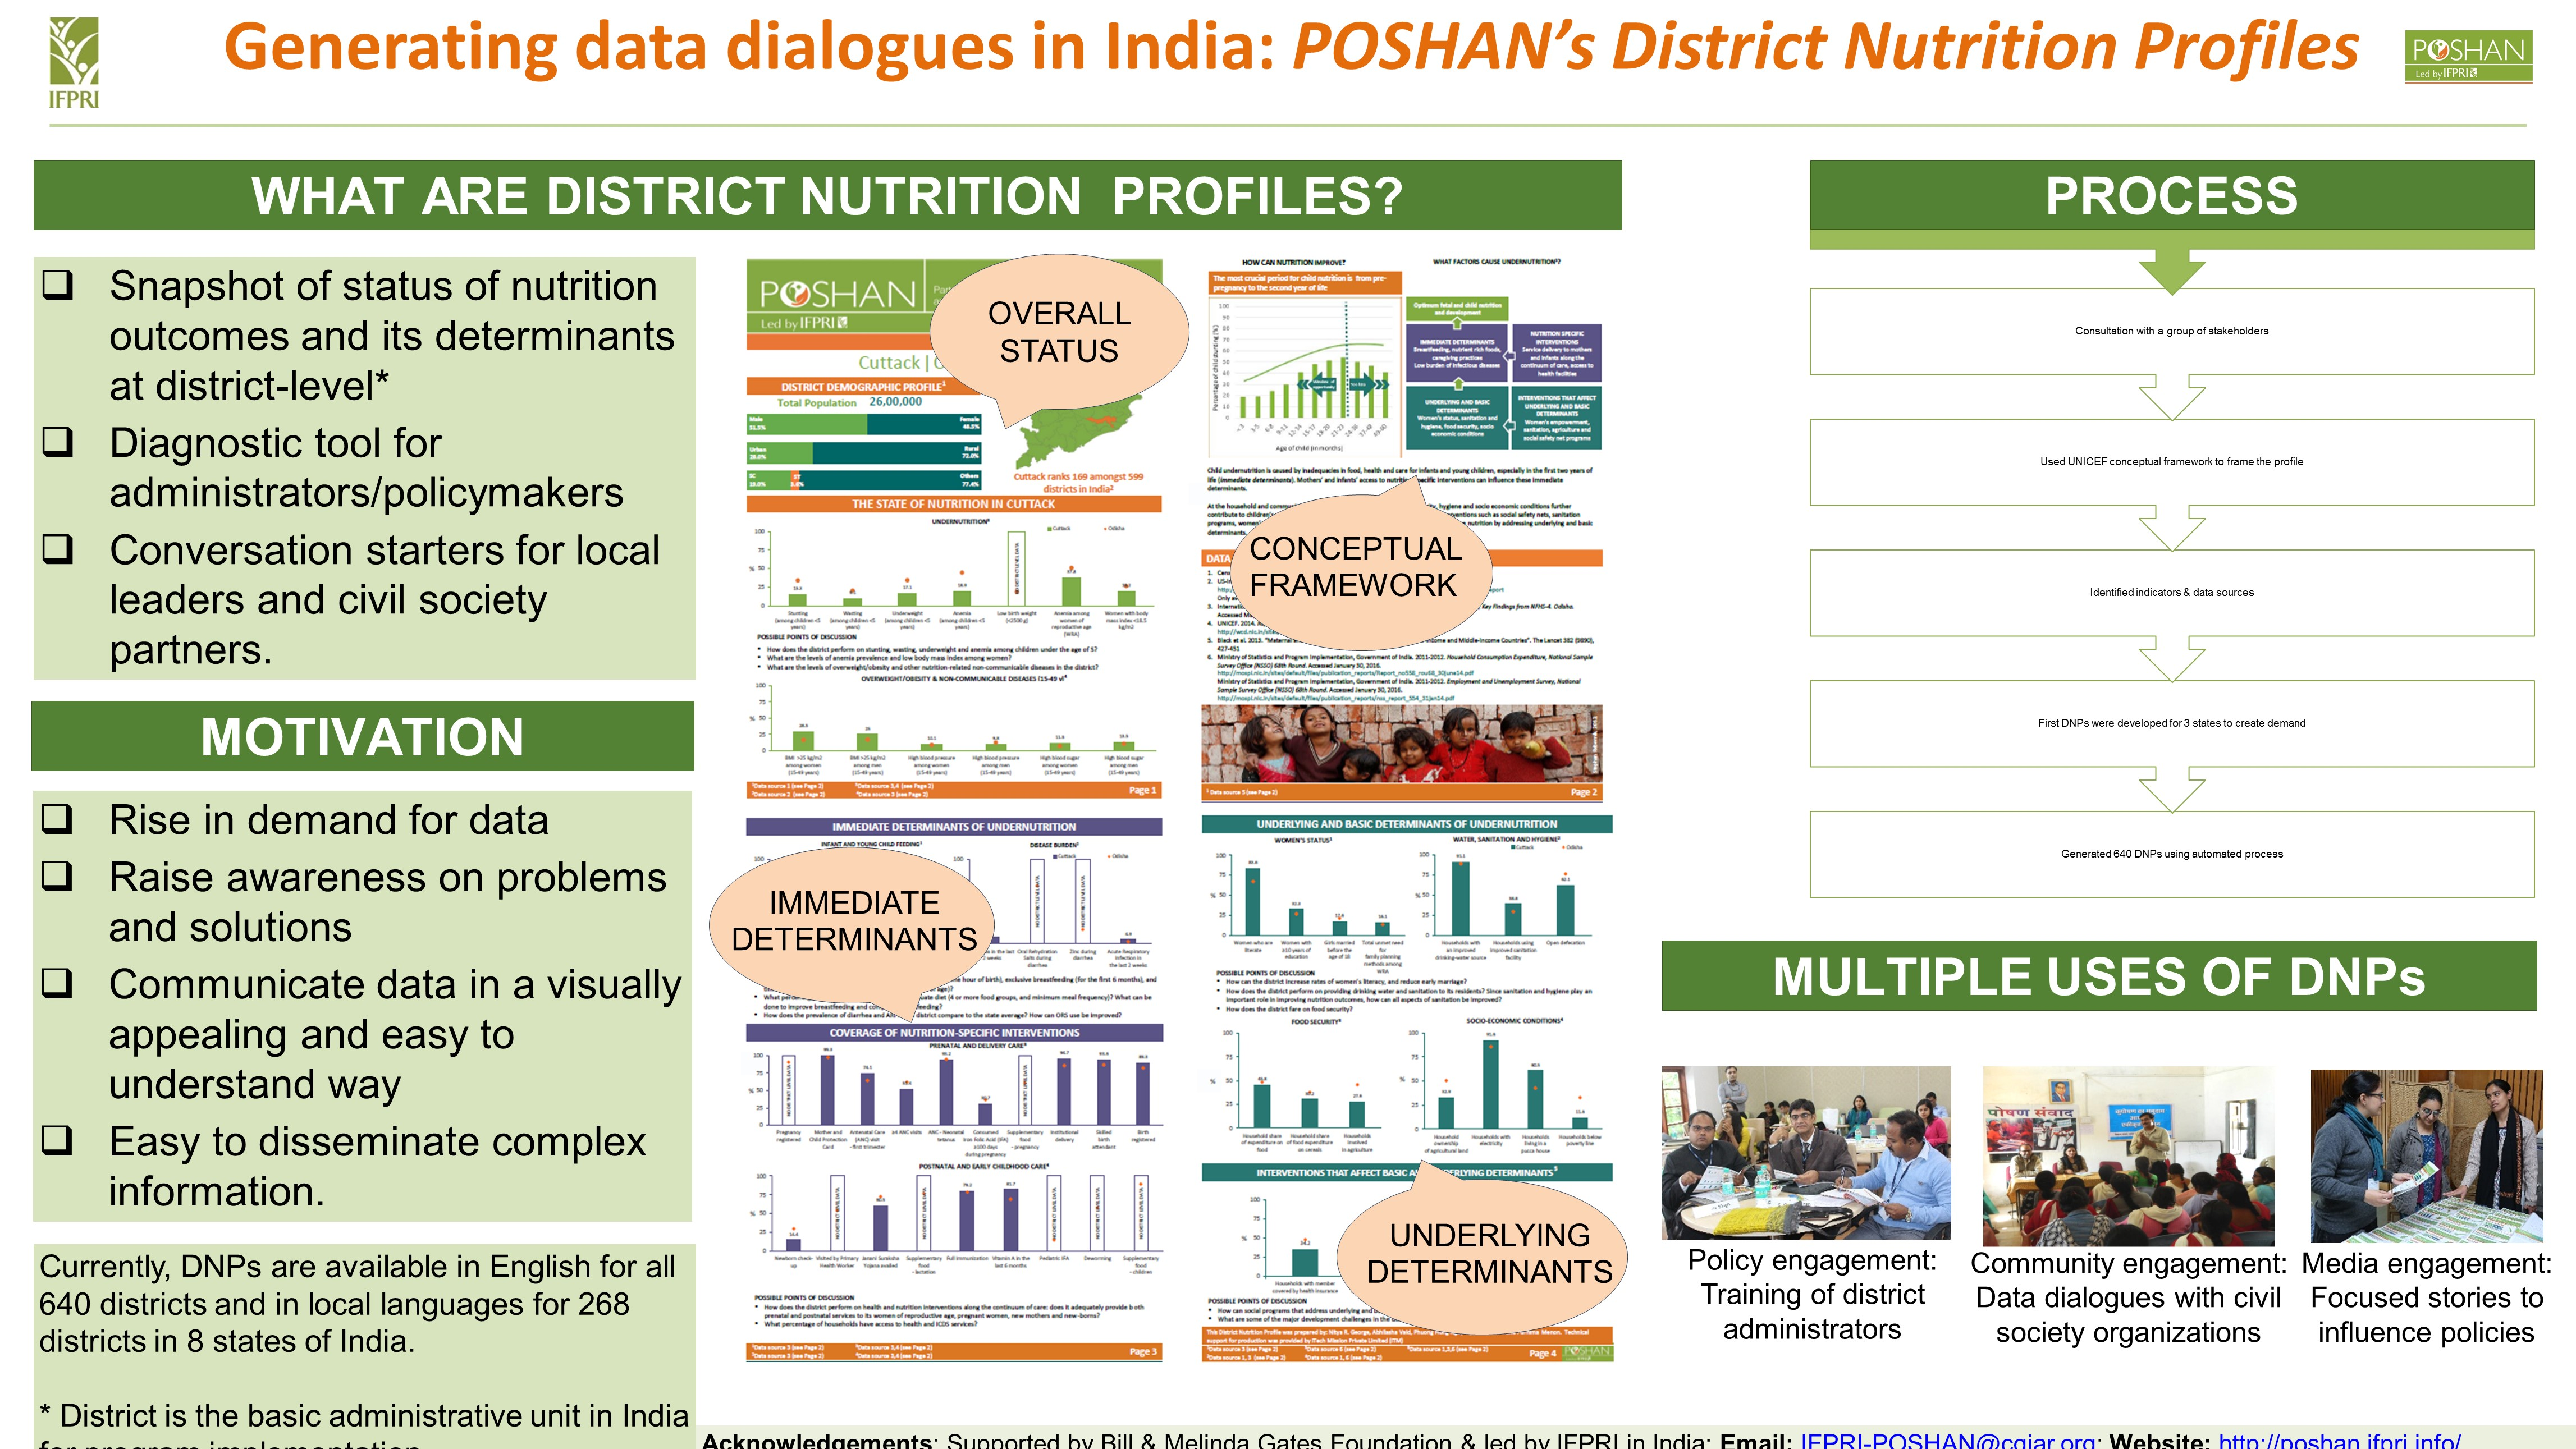 Generating Data Dialogues in India: POSHAN's District Nutrition Profiles